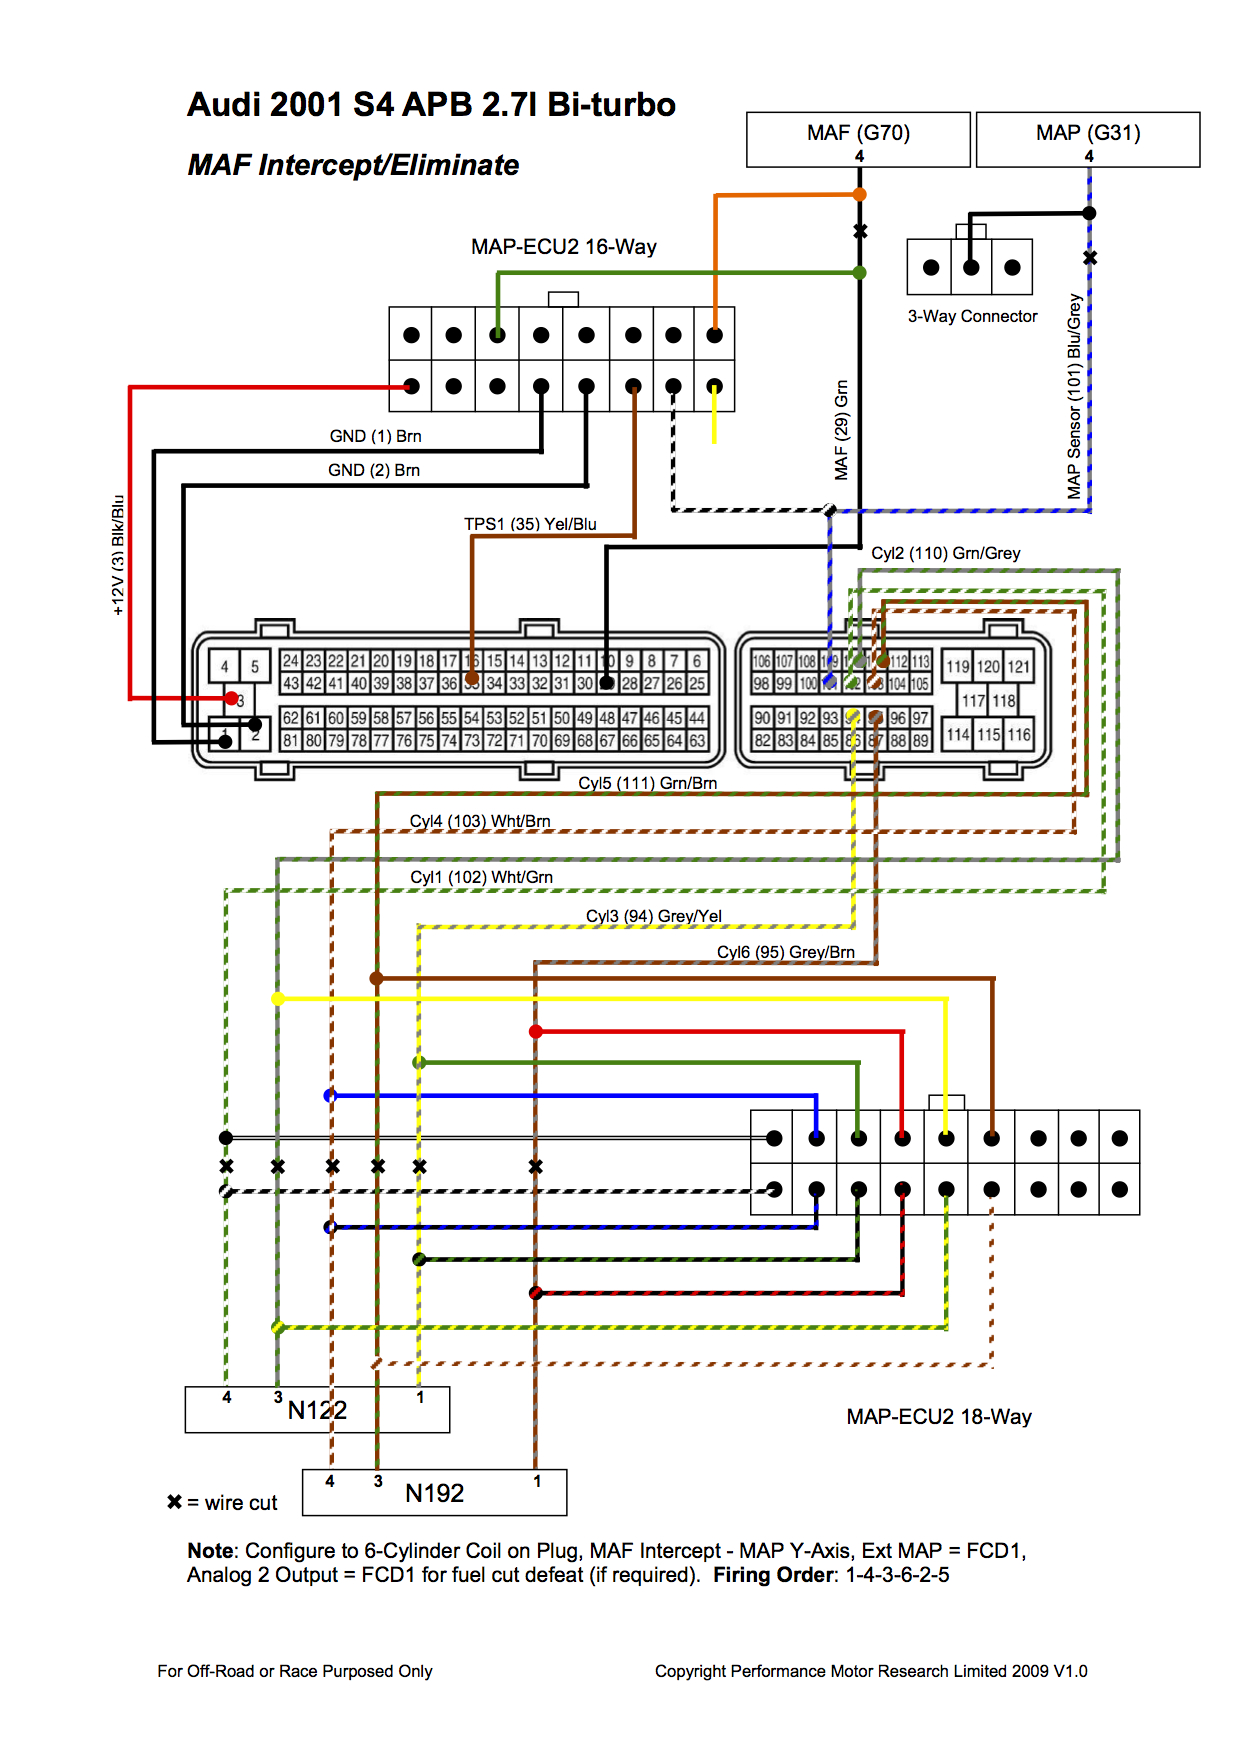 Audi S4 20011 ecu wiring diagram paccar ecu wiring diagram \u2022 wiring diagrams j 2003 nissan 350z radio wiring diagram at bakdesigns.co